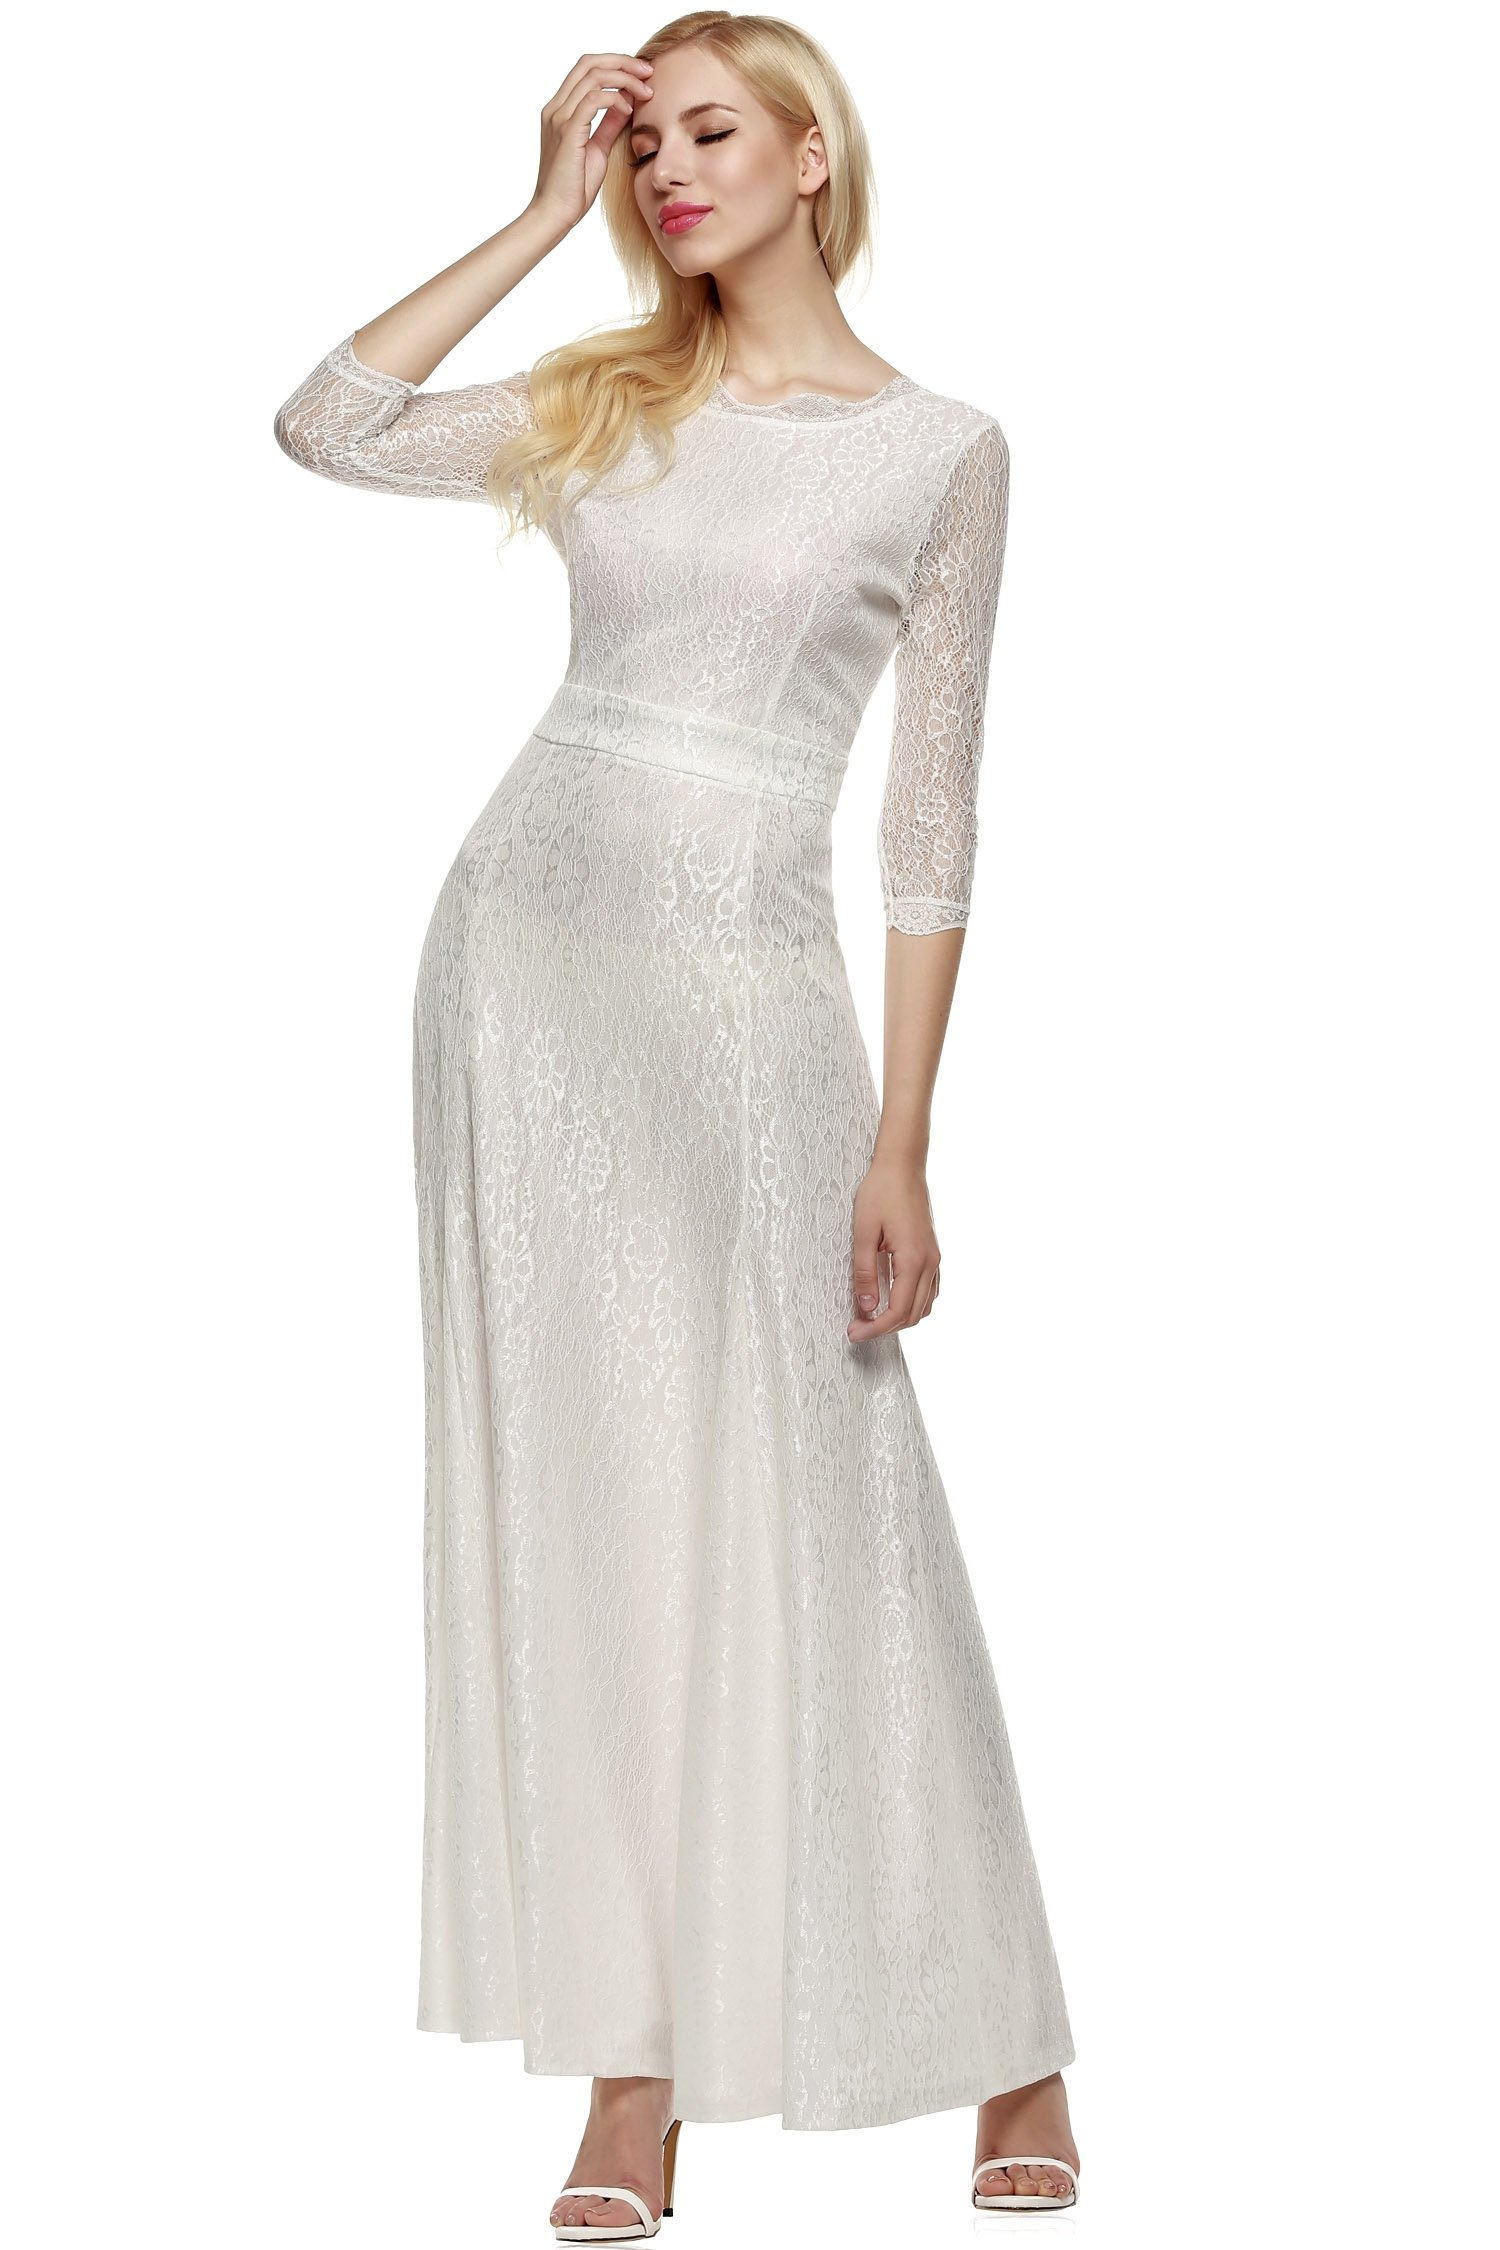 ANGVNS Women Lace 2/3 Sleeve Bridesmaid Homecoming Gown Dress, Size XX-Large, White